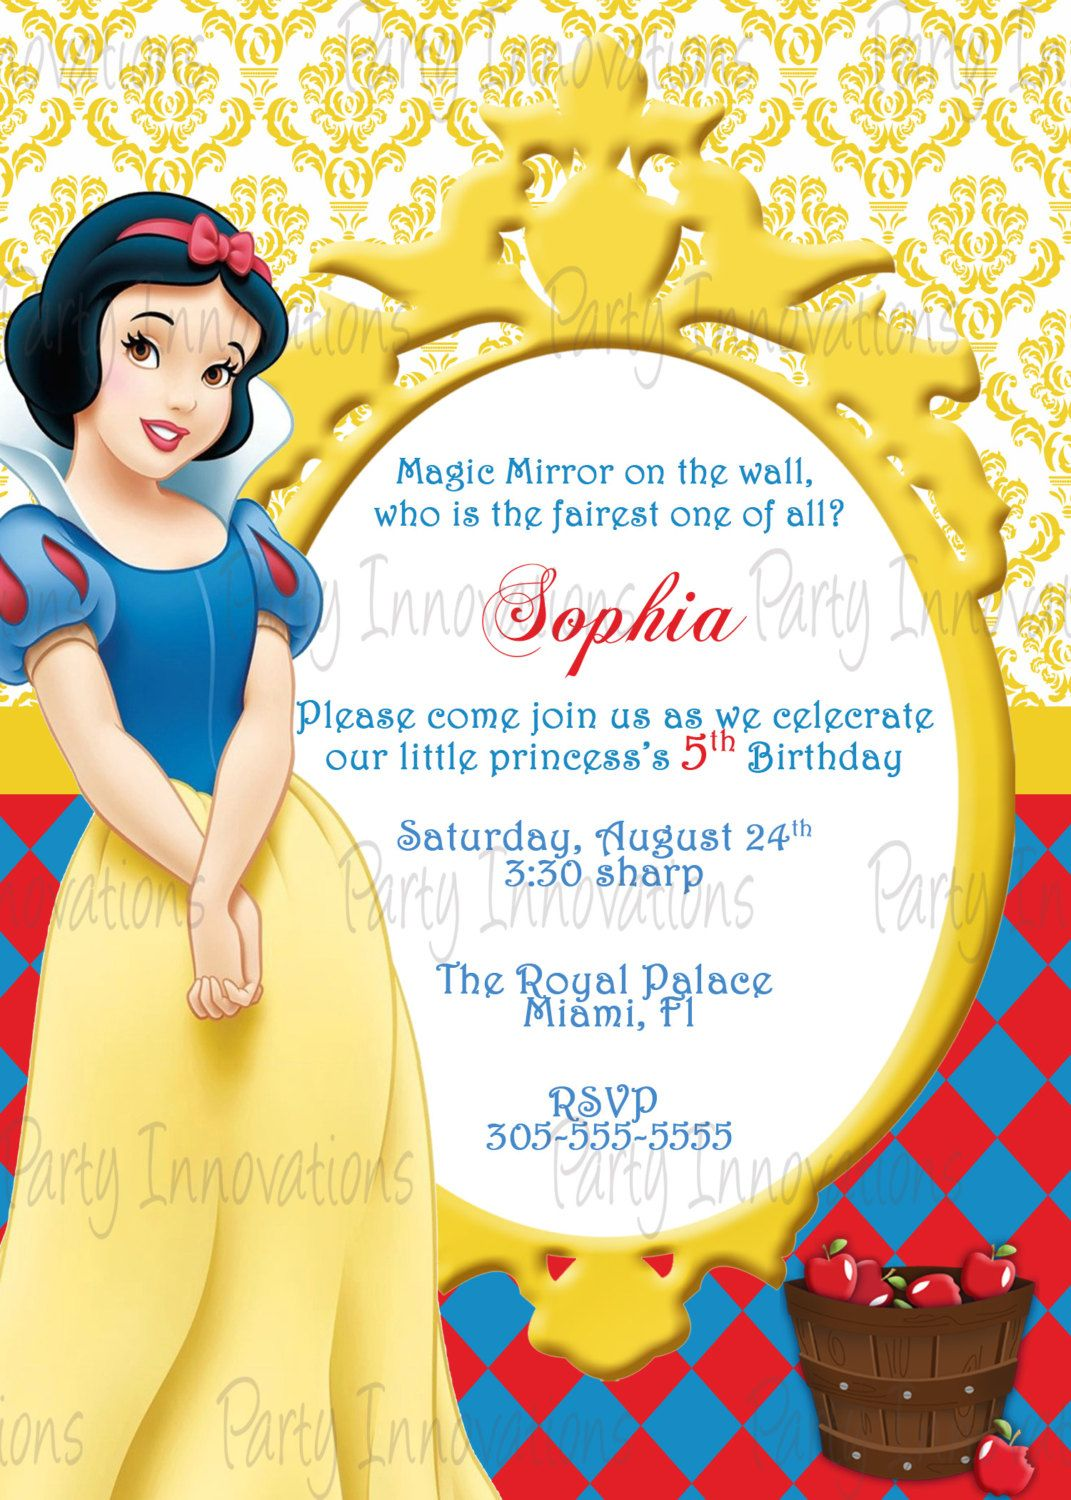 snow white invitations birthday party | snow white printable, Birthday invitations